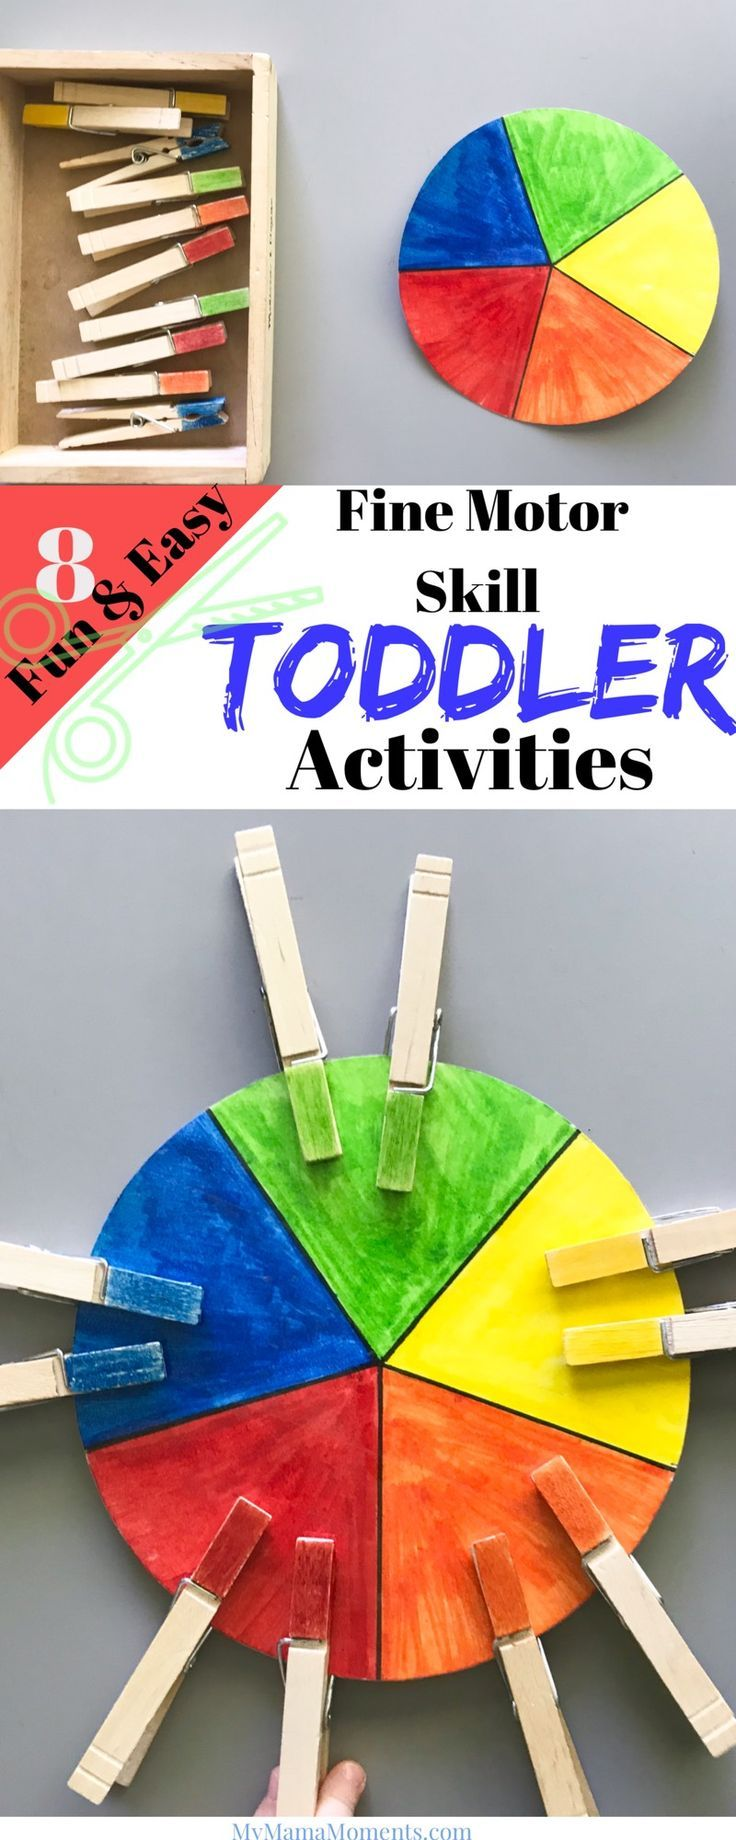 8 Fun & Easy Fine Motor Skill Activities for Toddlers! A BONUS Threading Activity Step-by-Step Tutorial! Make learning fun one activity at a time! #to…